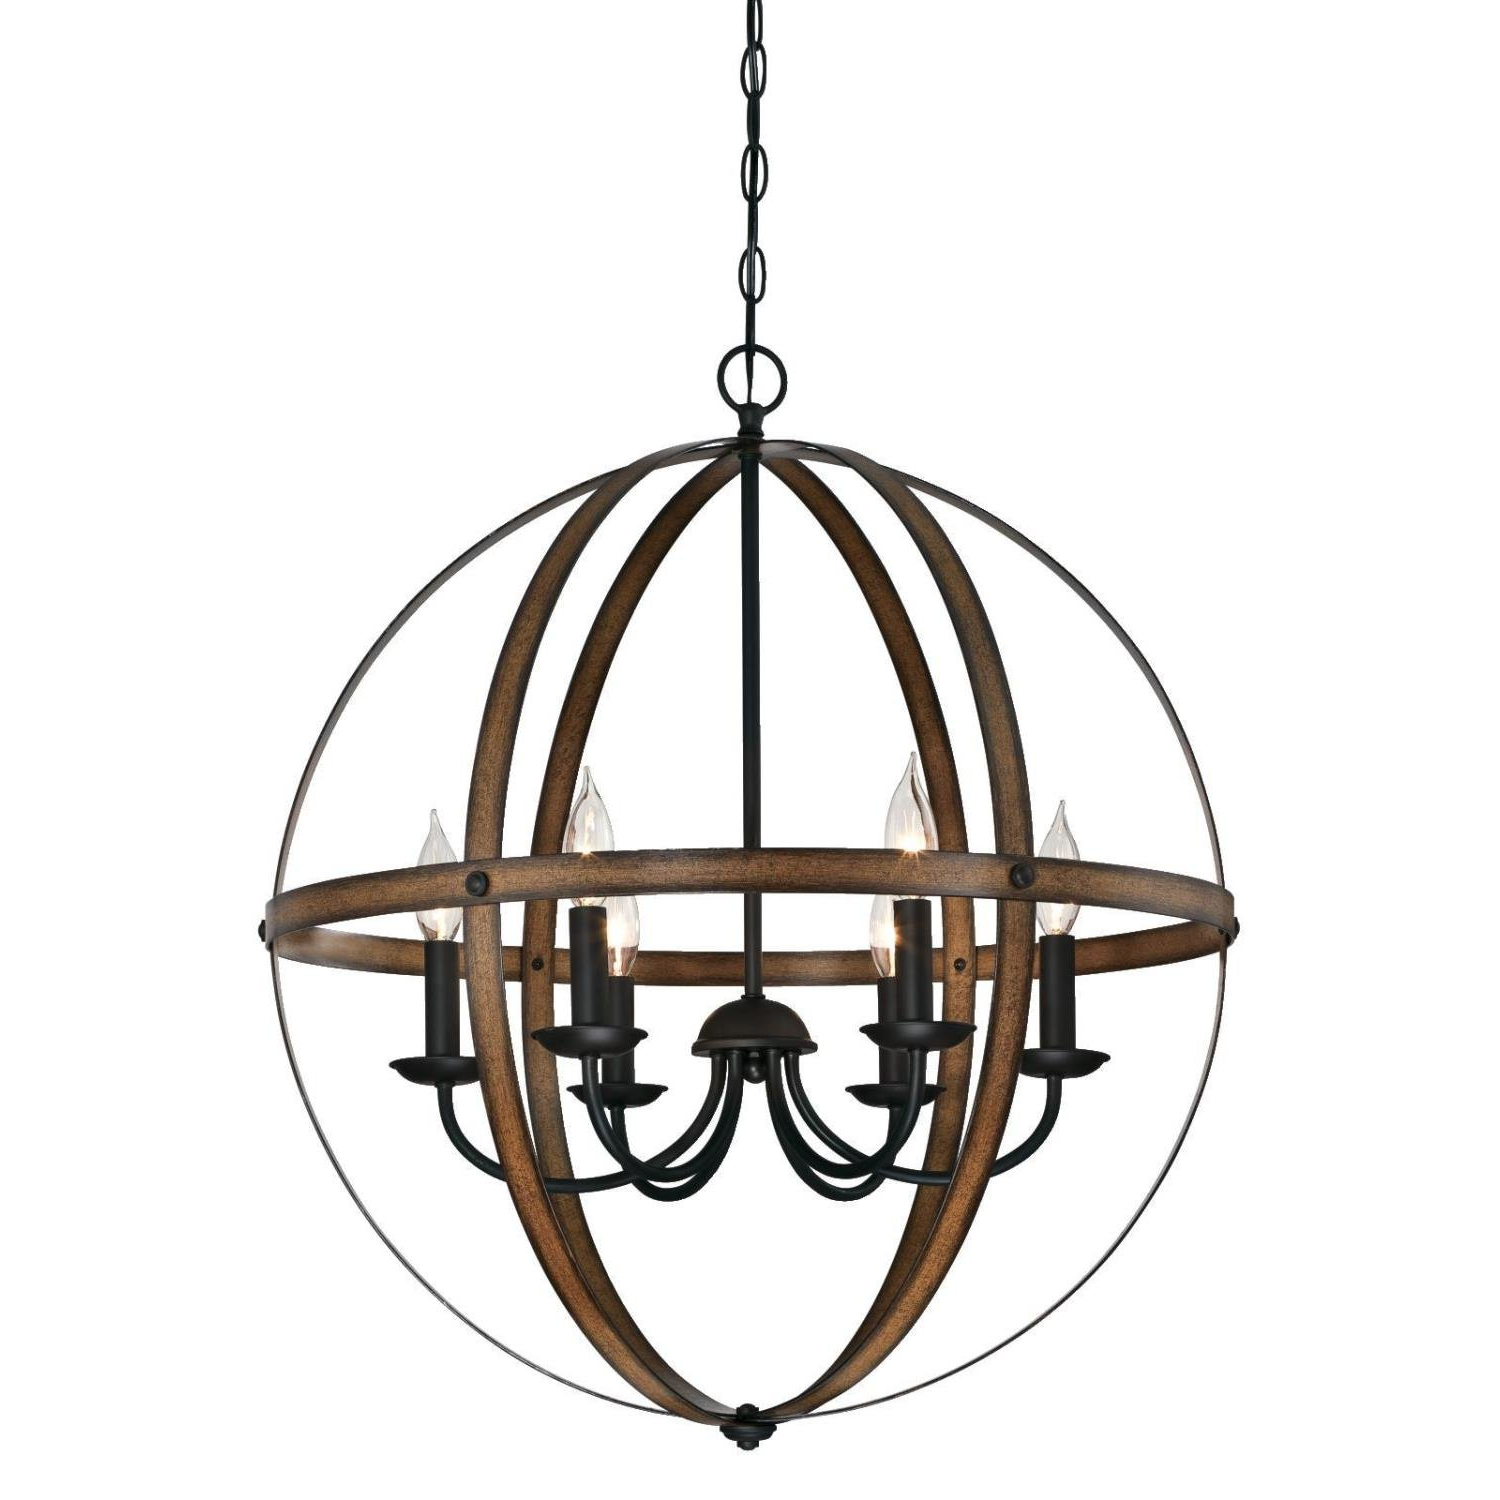 Donna 6 Light Globe Chandeliers Throughout Popular Joon 6 Light Globe Chandelier (View 9 of 20)